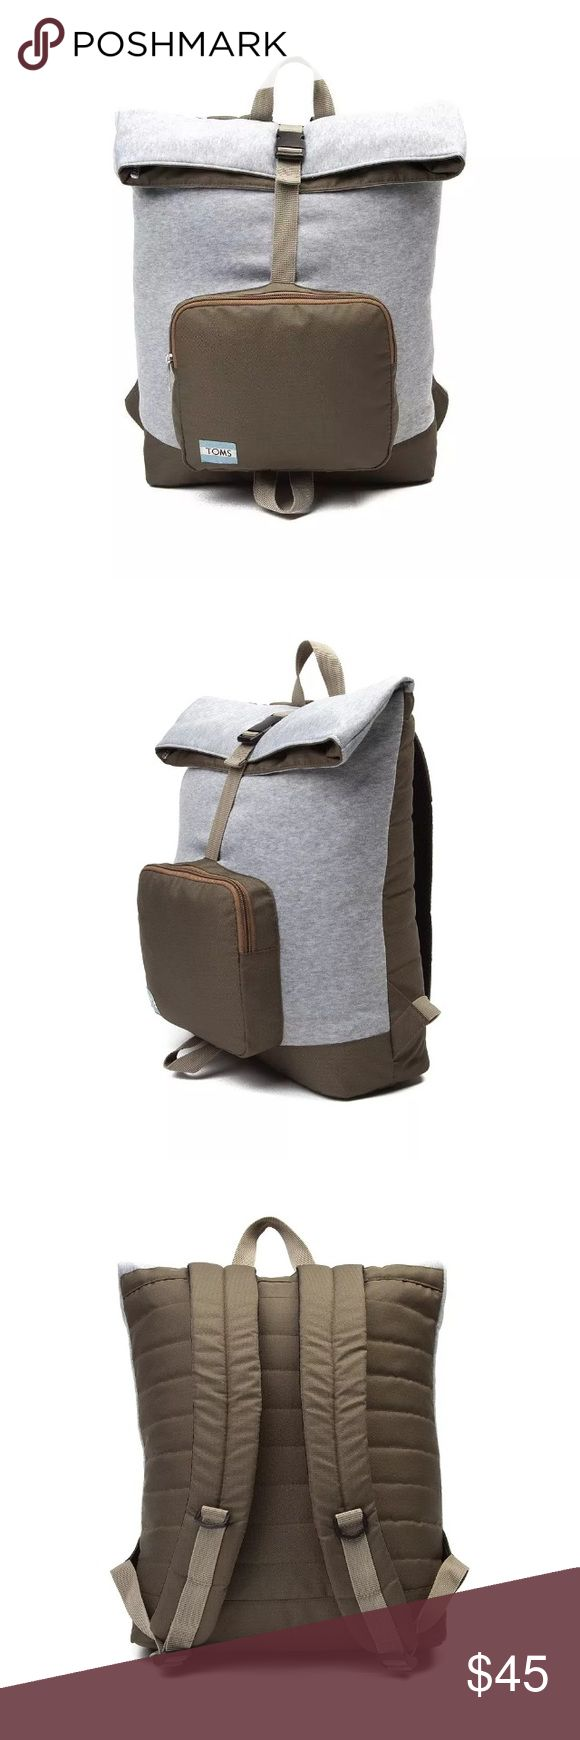 SALE Toms stand up jersey backpack in olive multi SALE Toms standup to bullying stand up backpack in olive multi! Perfect for a college student on the go! Inner computer sleeve. Padded and adjustable straps. 15.7 X 9.9 X 4.3 price is firm. Bundle and save TOMS Bags Backpacks